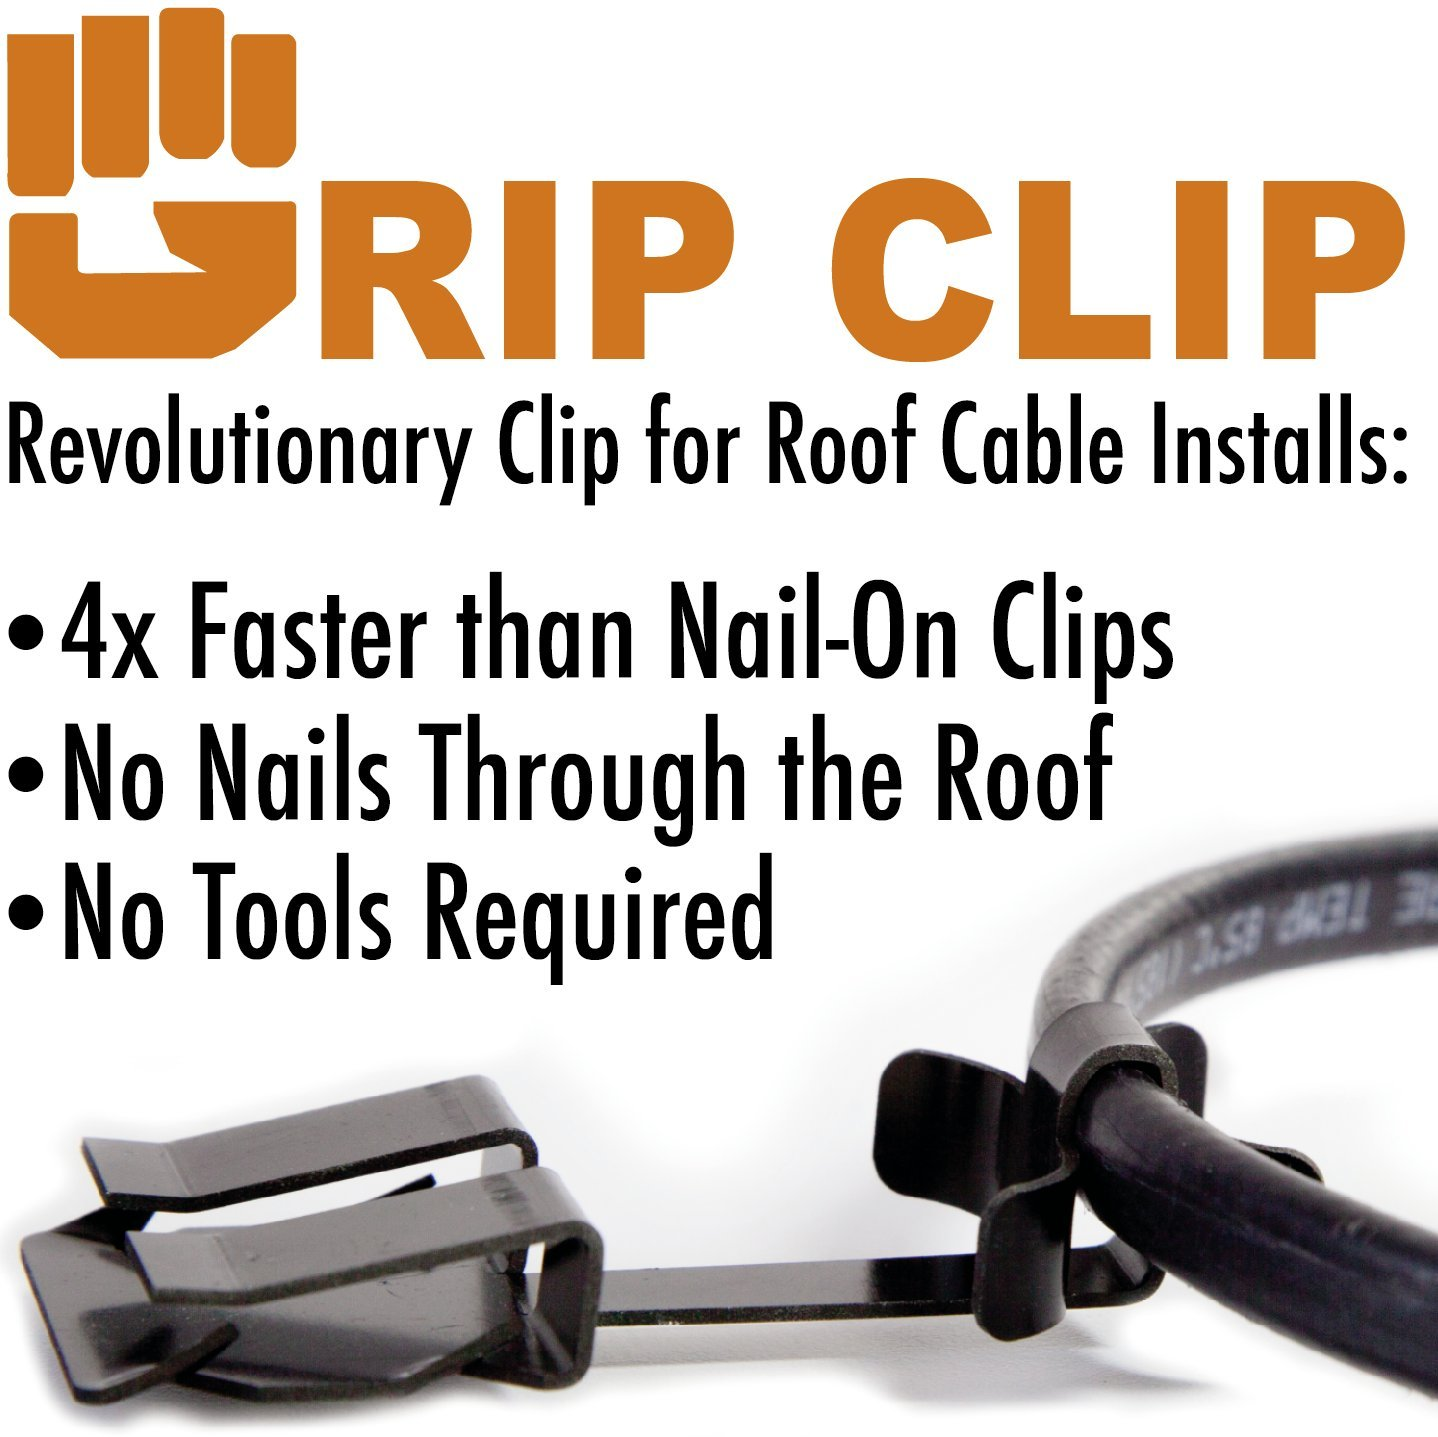 GripClip Roof Cable Clip for Securing Ice Dam Heat Tape, Heat Cable and Holiday Lighting to Roofs (25pack)